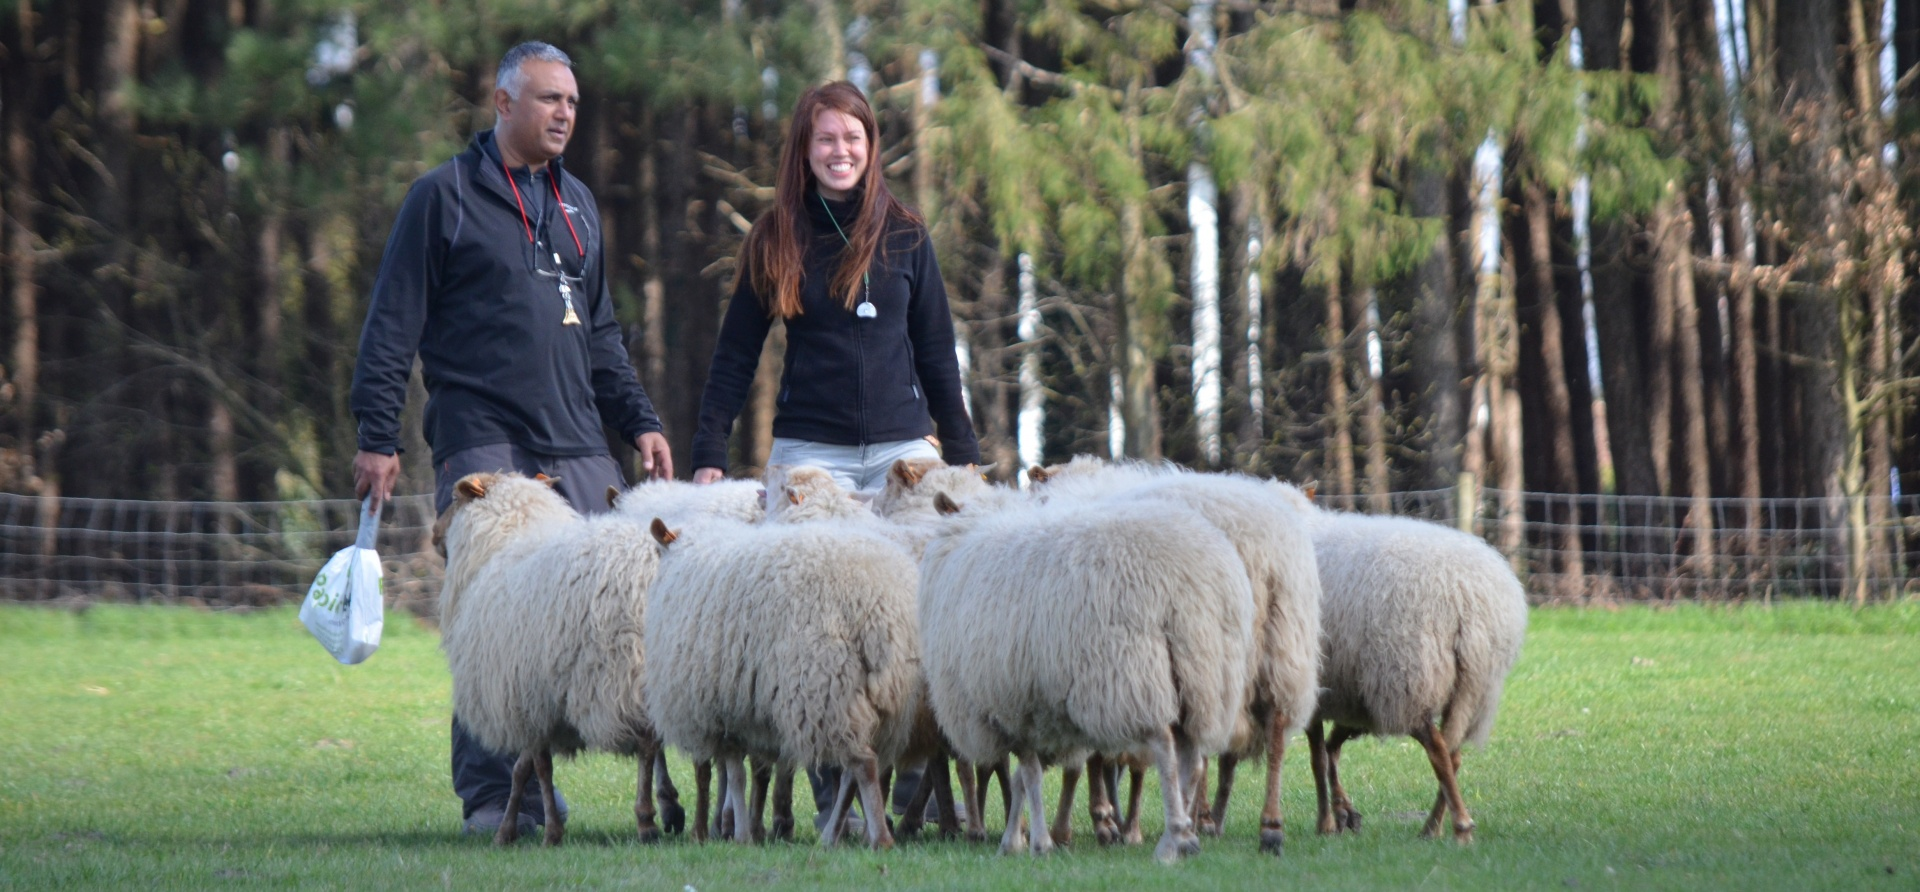 Sheepdog Training Experience for Two - Leicestershire-6